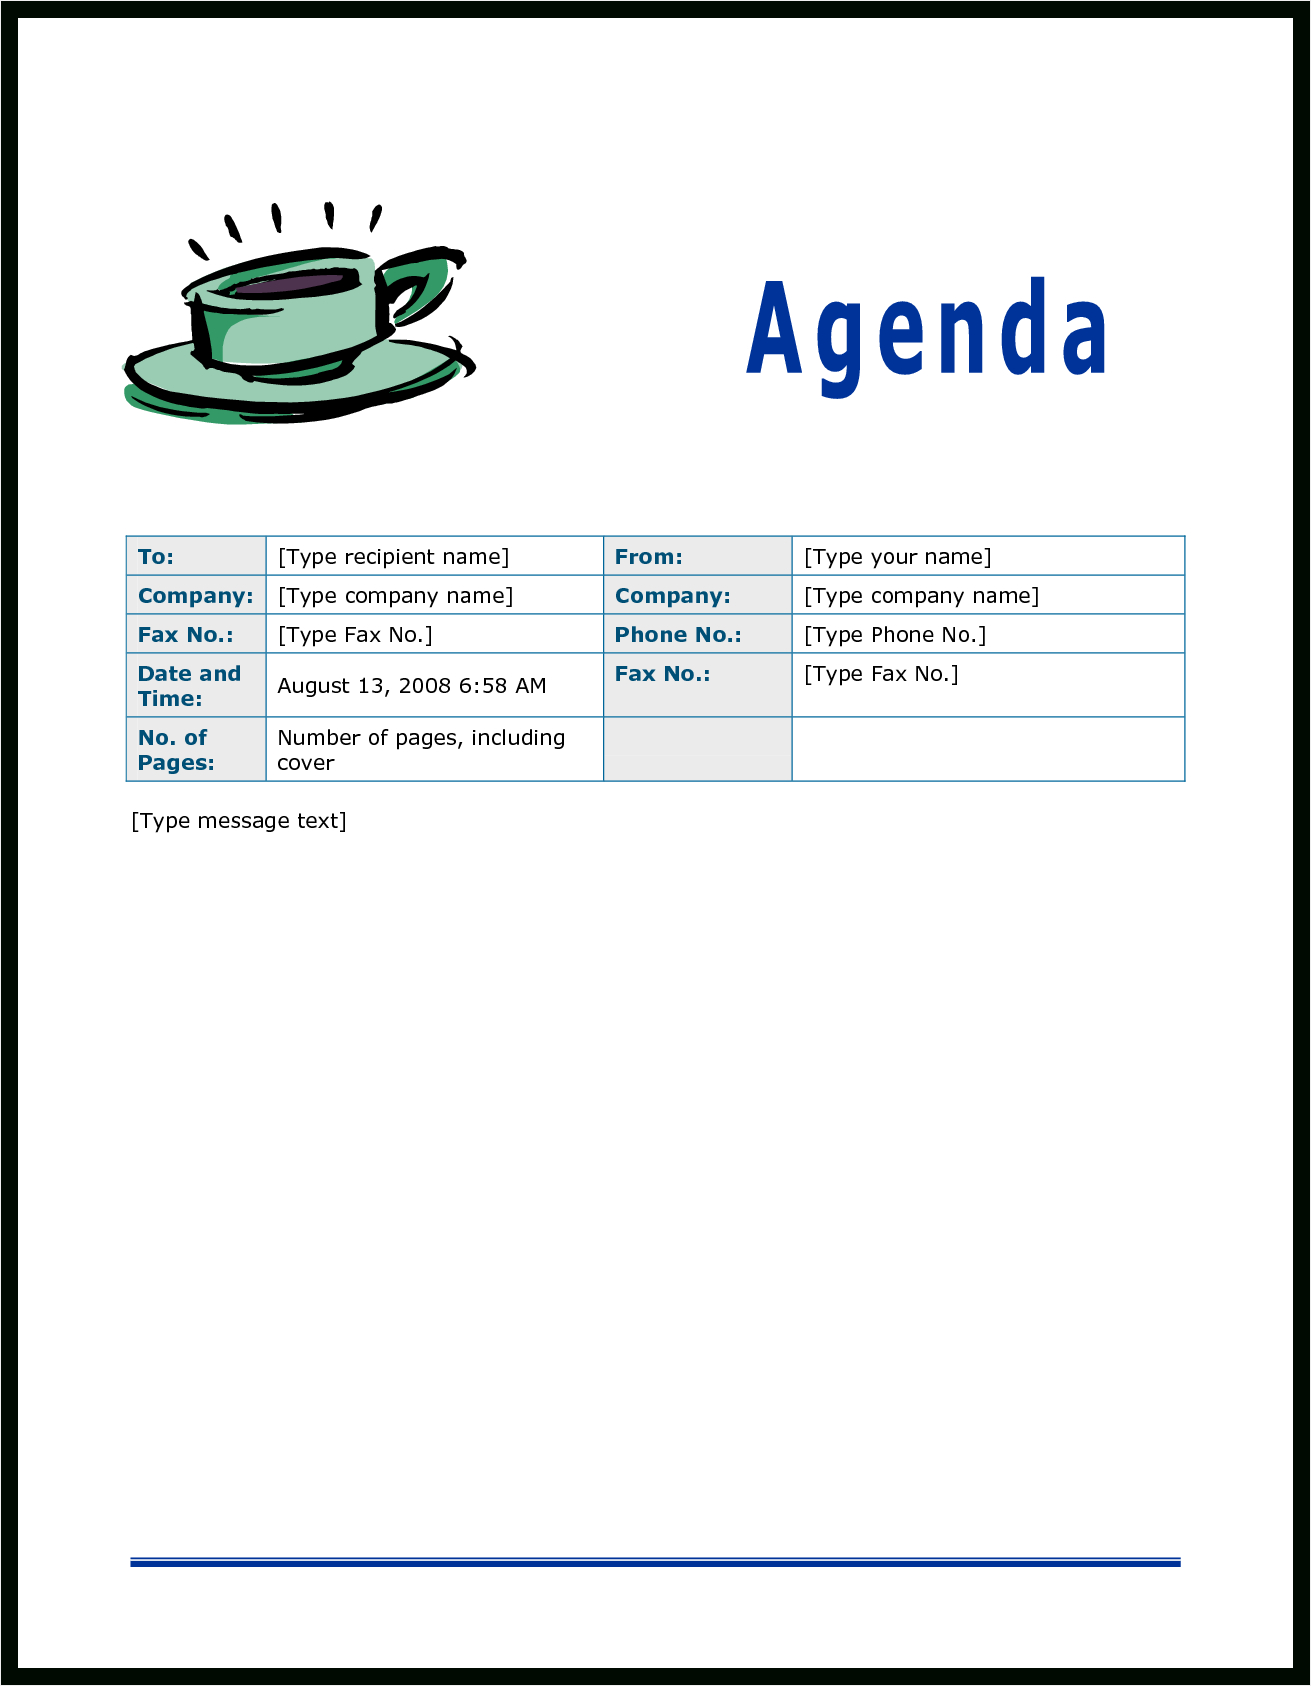 Agenda Format For Event – Zohre.horizonconsulting.co Throughout Event Agenda Template Word